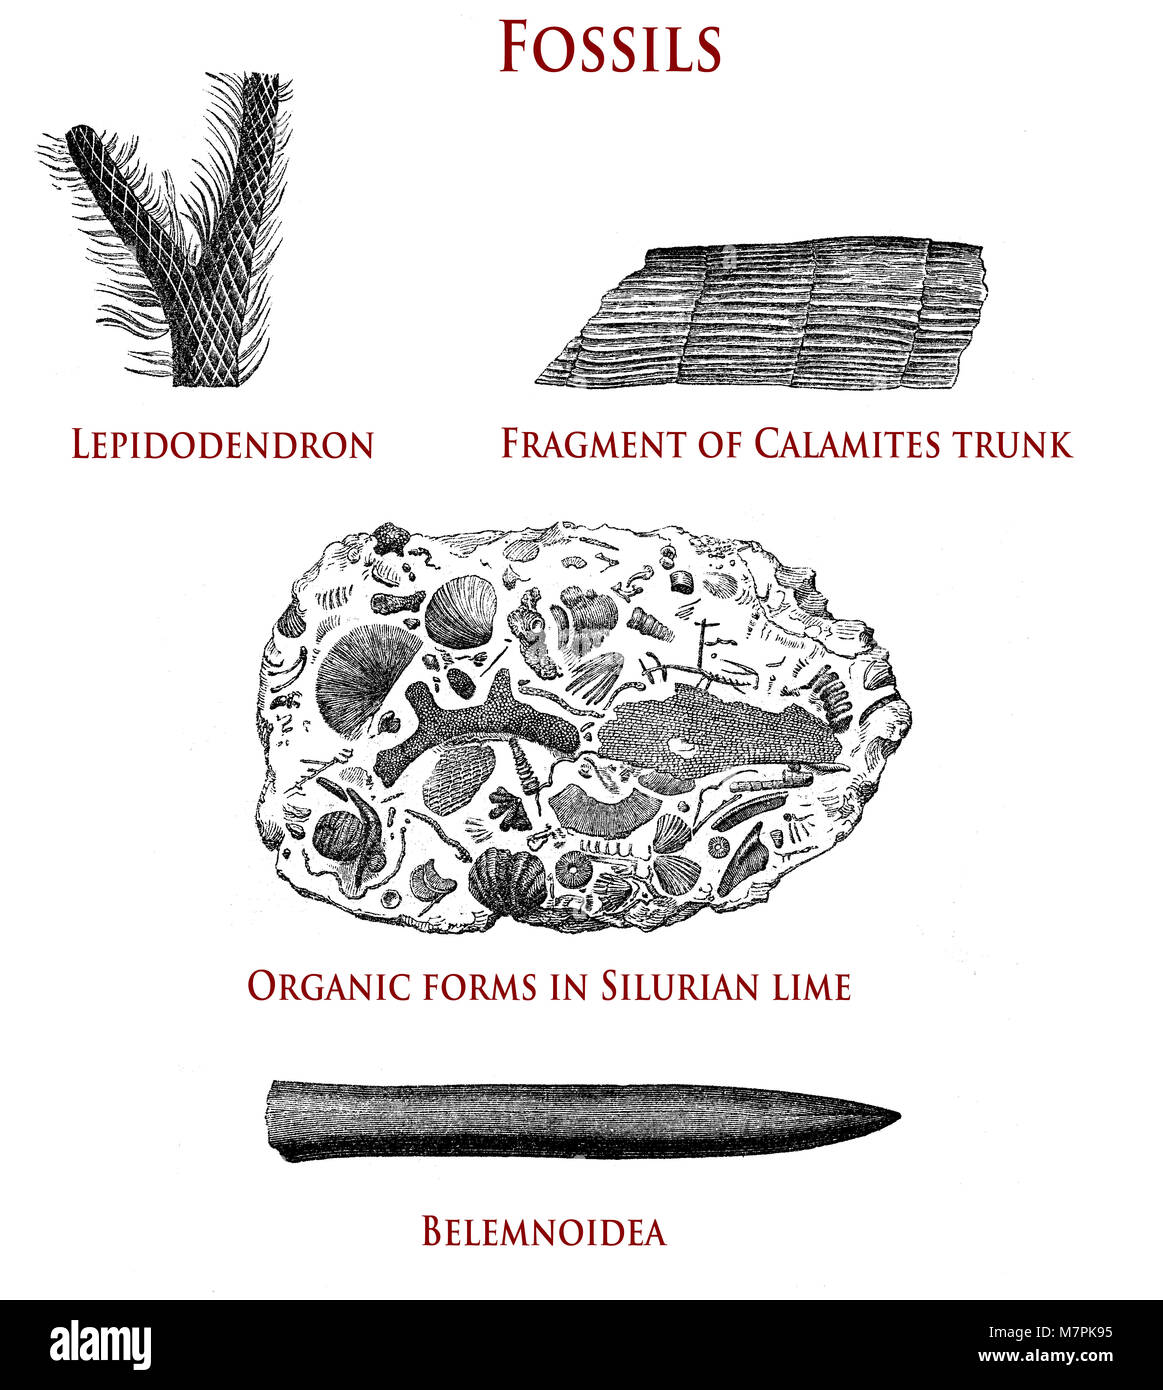 vintage illustration of fossils:  lepidodendron, calamites, organic forms in Silurian lime and belemnoidea - Stock Image